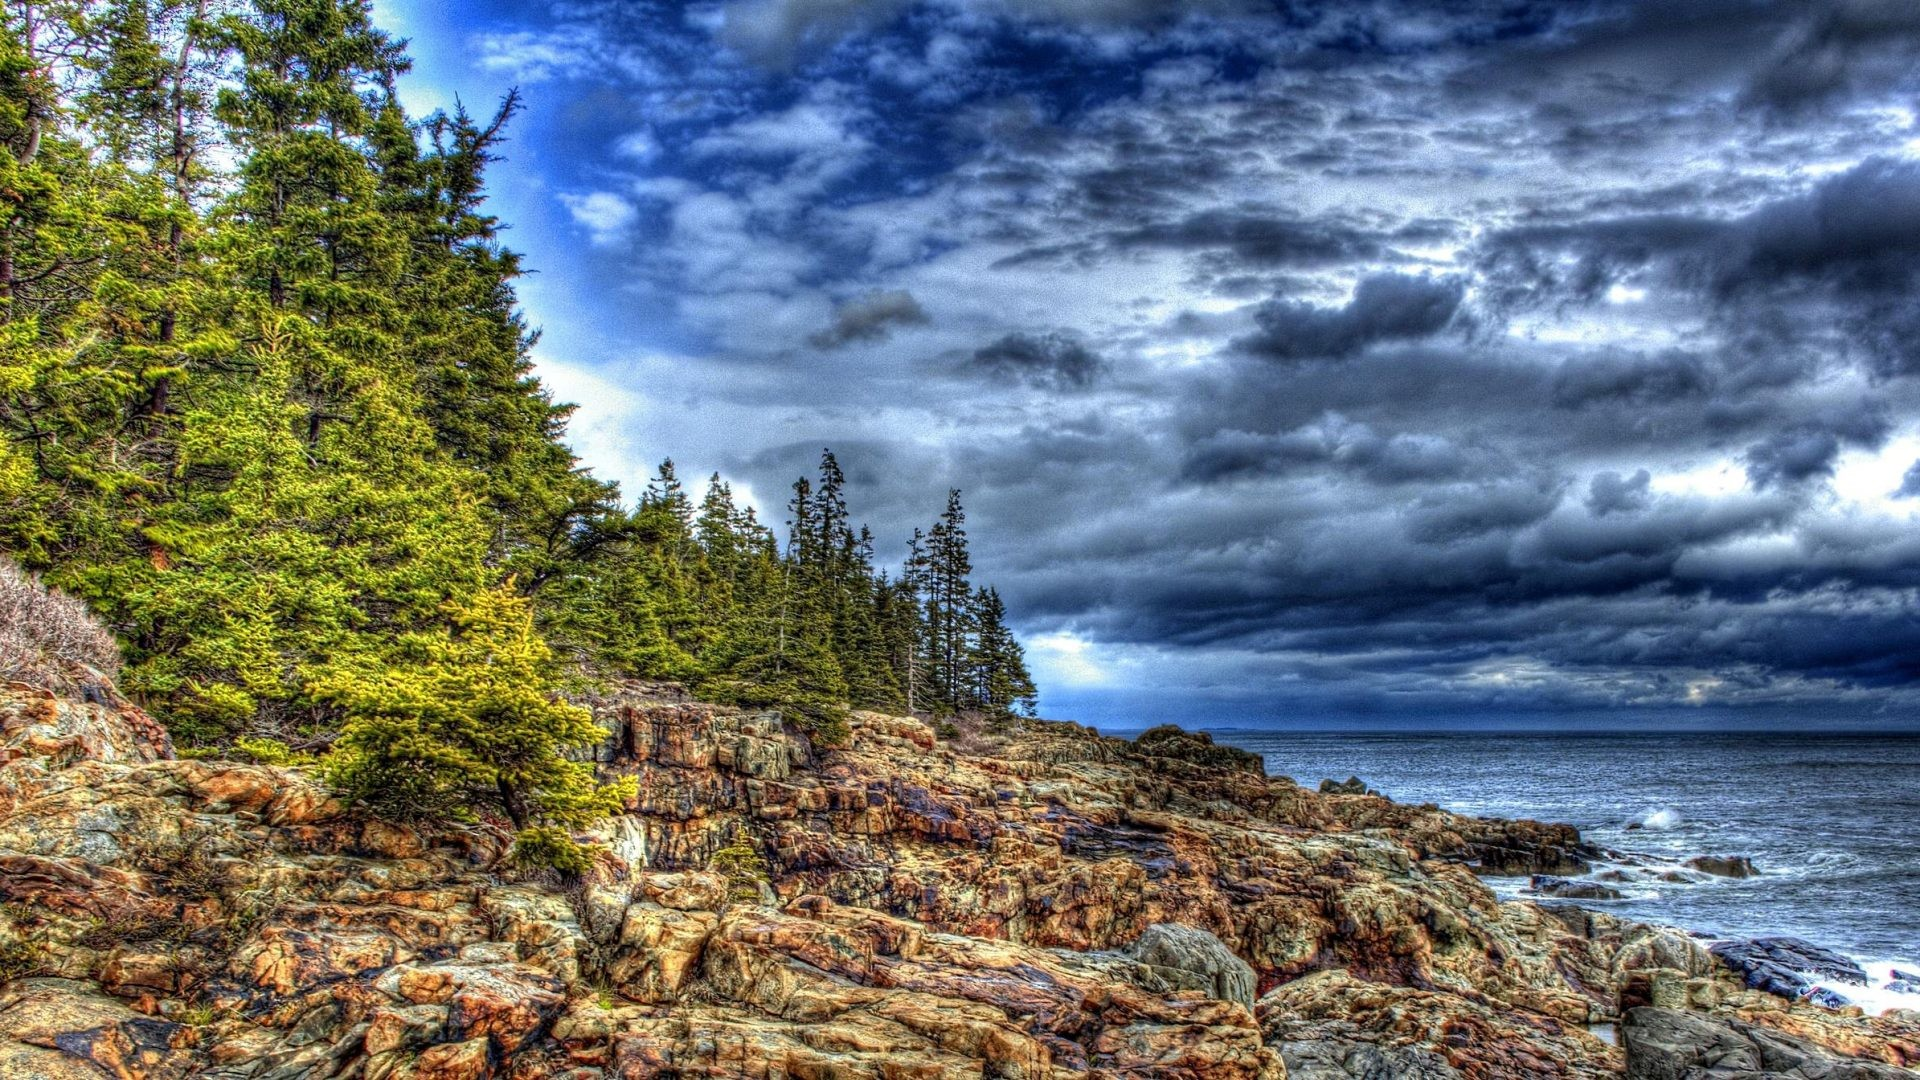 Stormy Tag – Beautiful Lovely Beauty Nature Trees Waves Stormy Leaves  Peaceful Sky View Rocks Storm